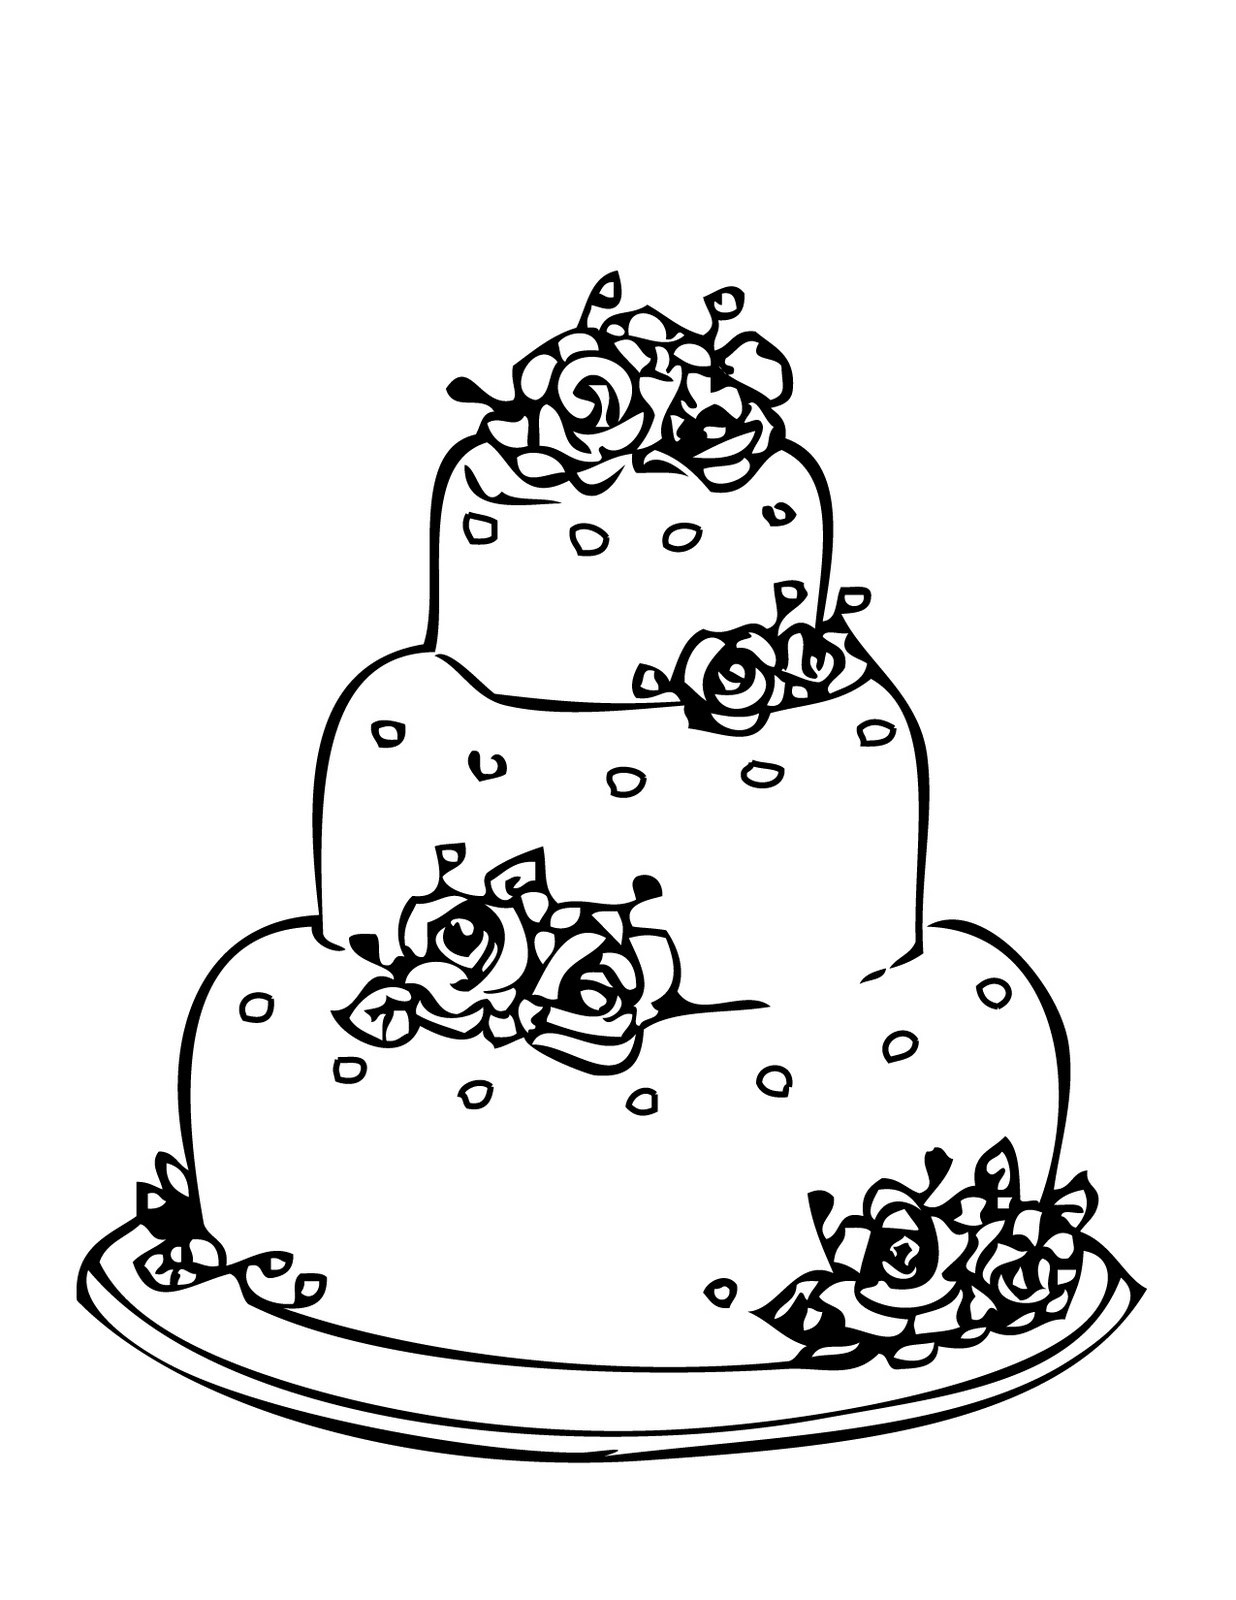 how to draw a birthday cake cake drawing template at getdrawings free download to birthday cake draw how a